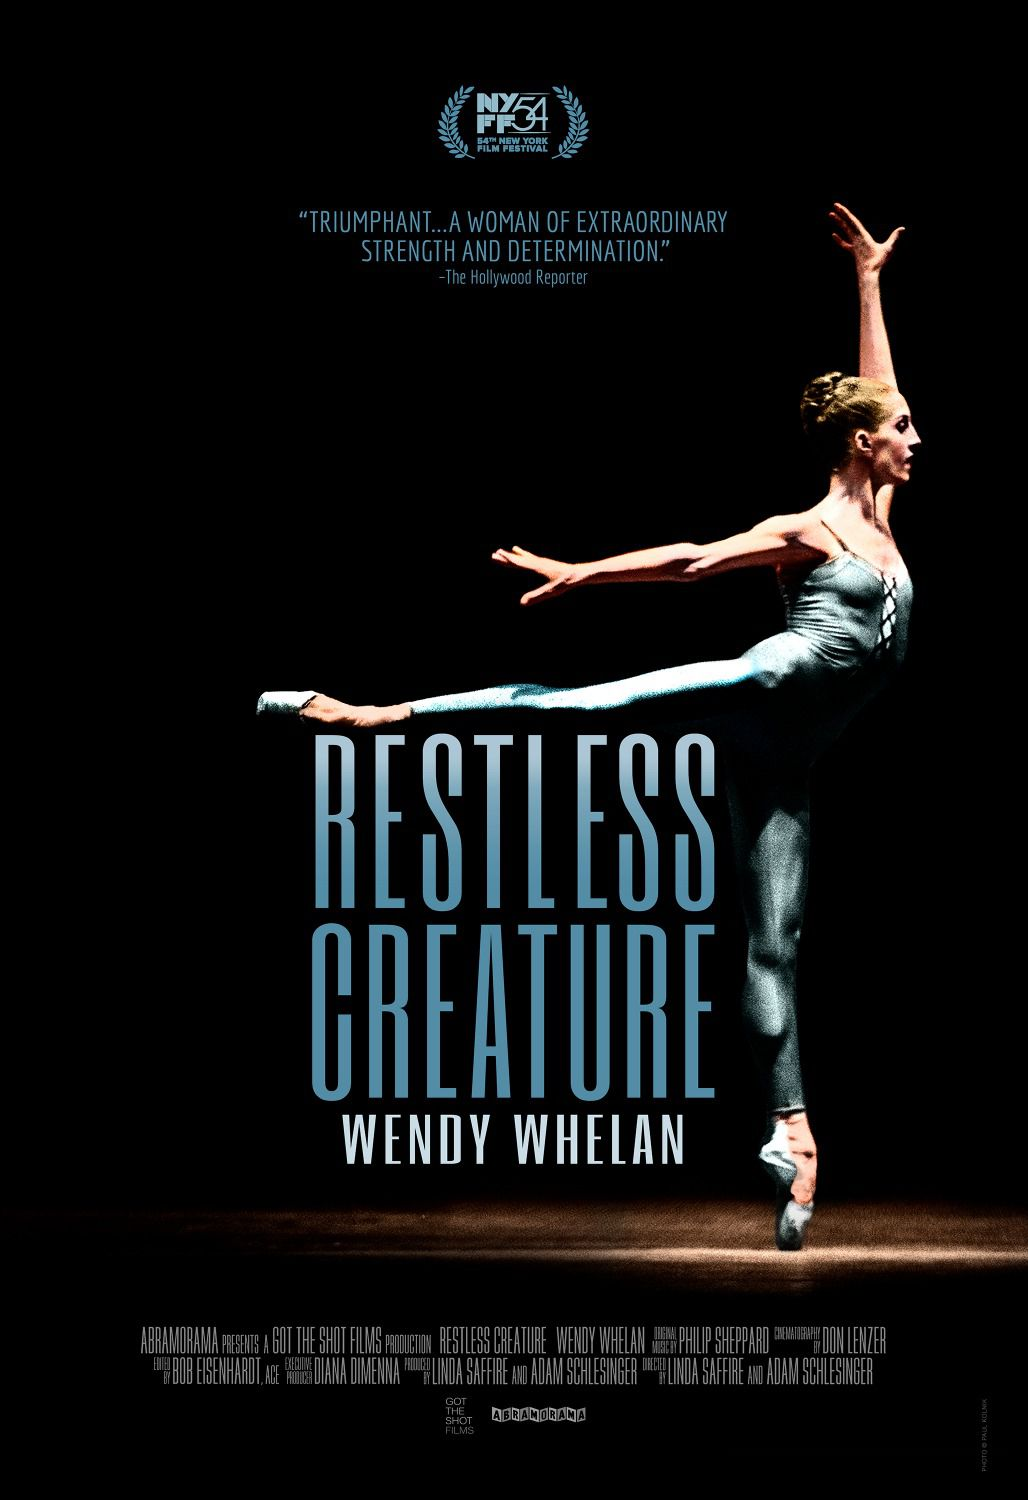 Restless Creature Wendy Whelan - film poster